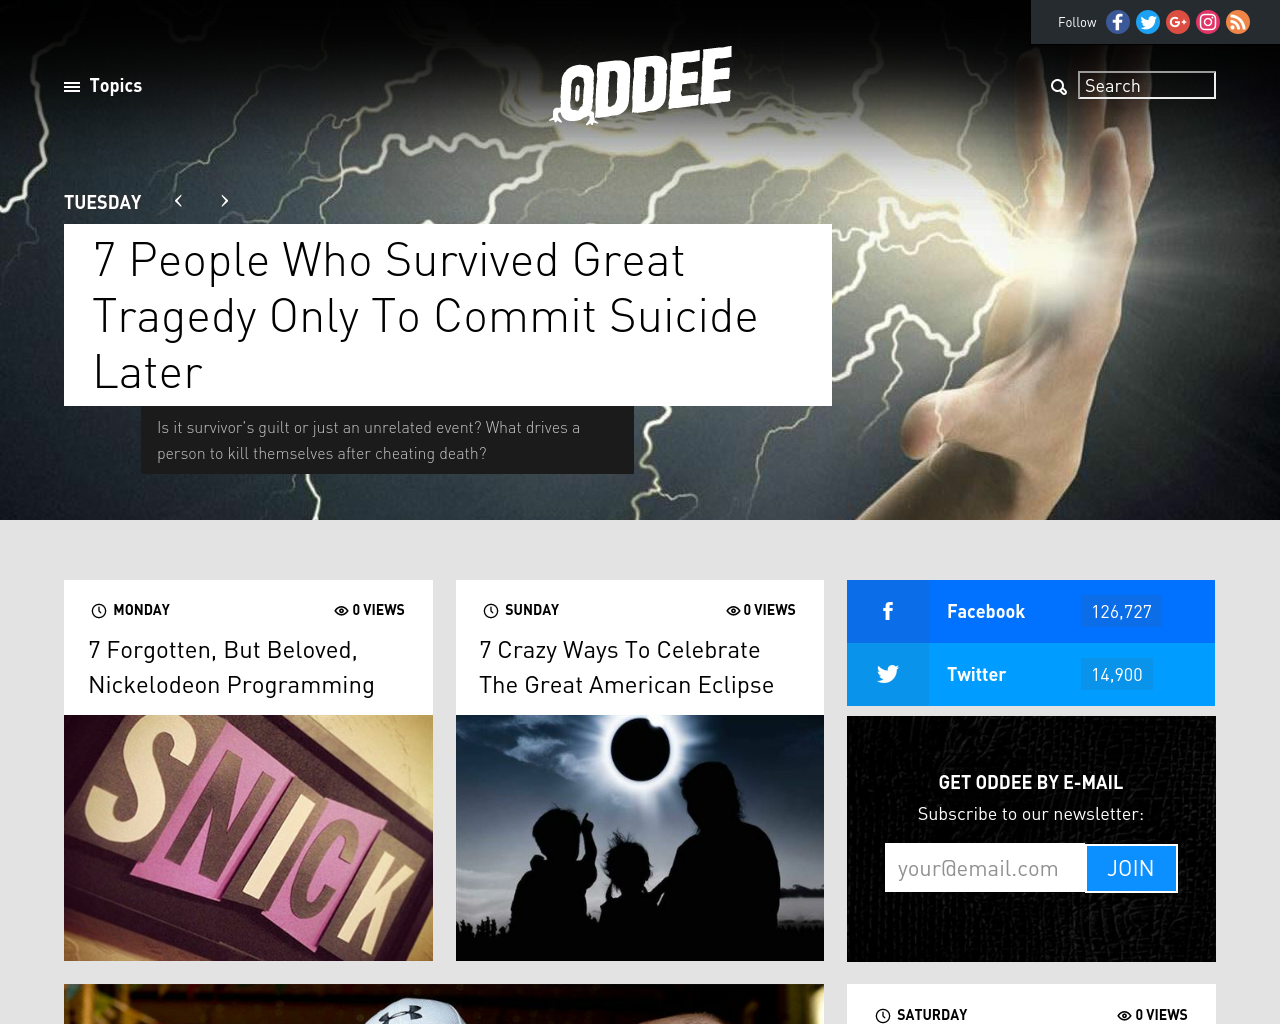 Oddee-Advertising-Reviews-Pricing